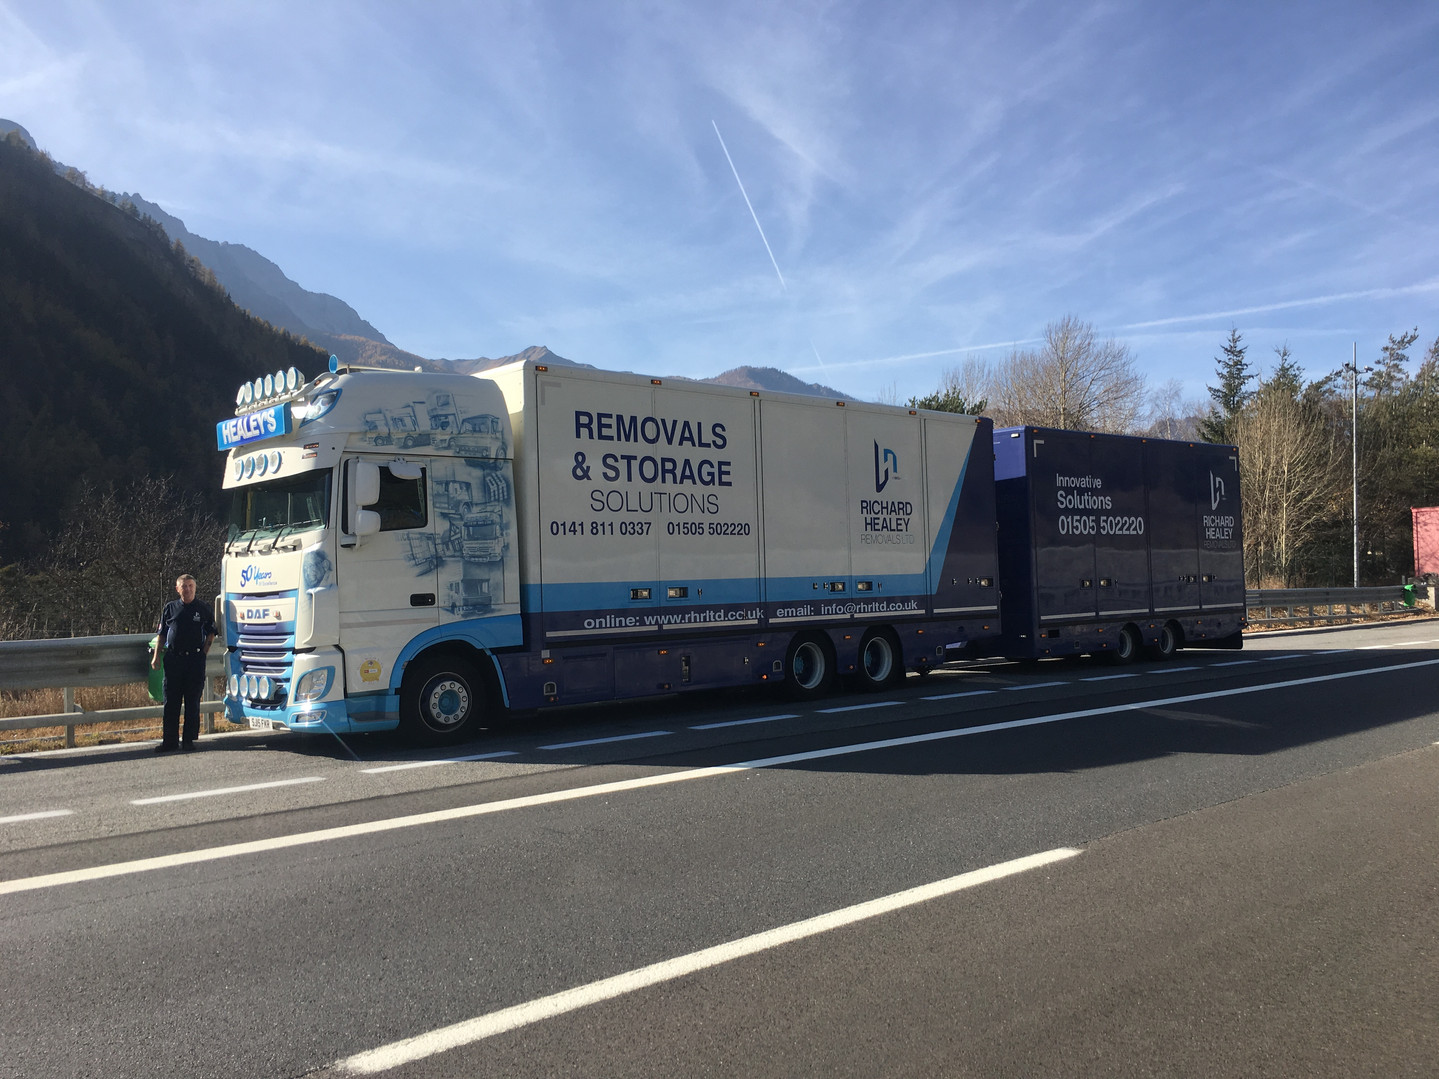 DAF truck and trailer parked in Italy